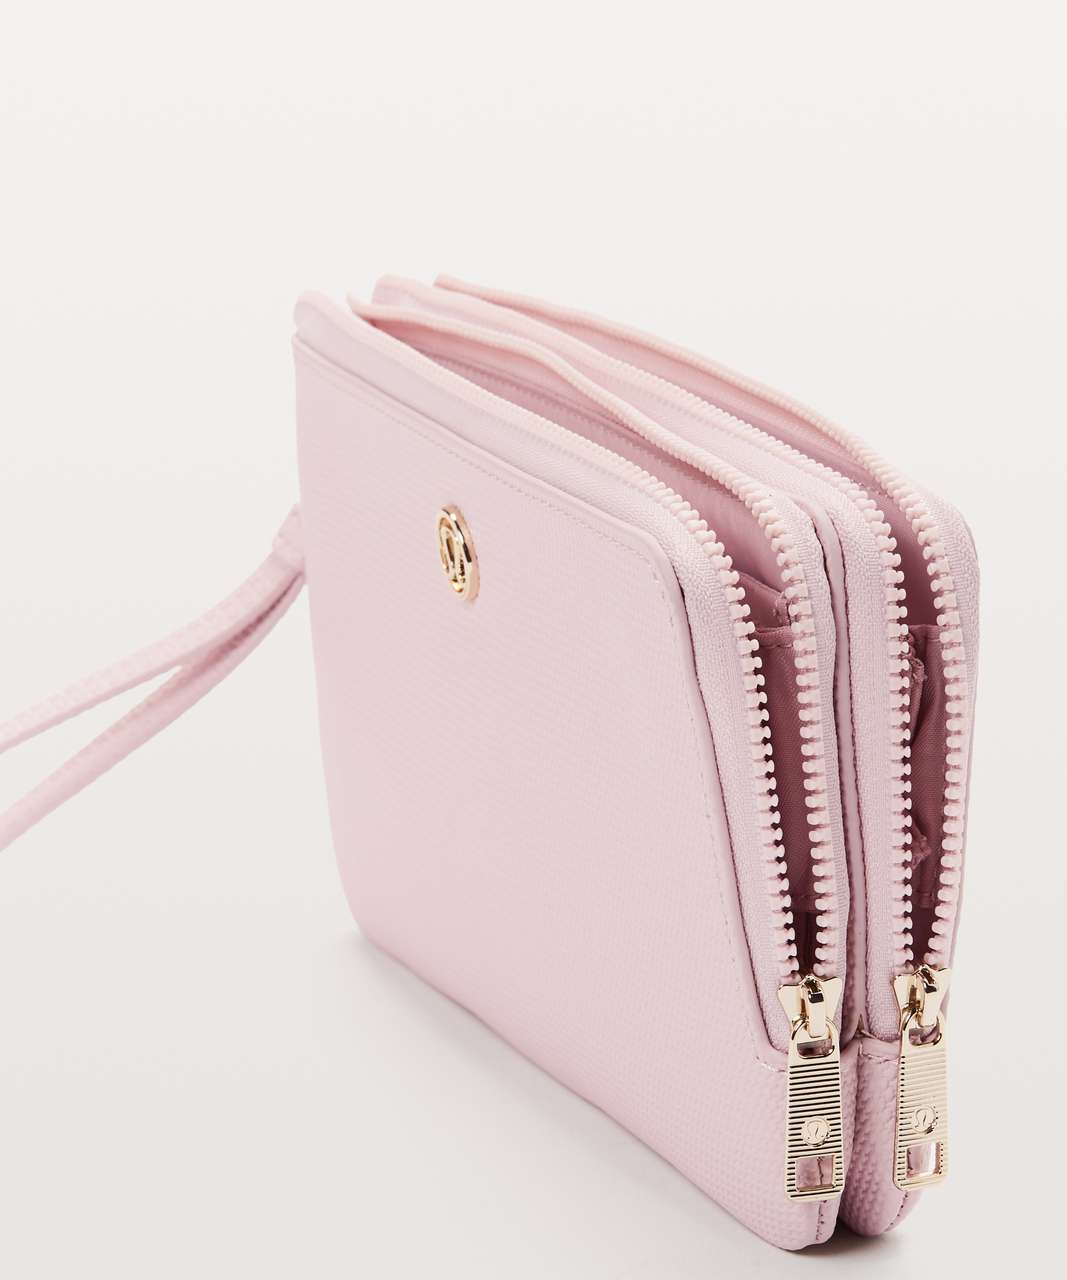 Lululemon Double Up Pouch - Misty Pink